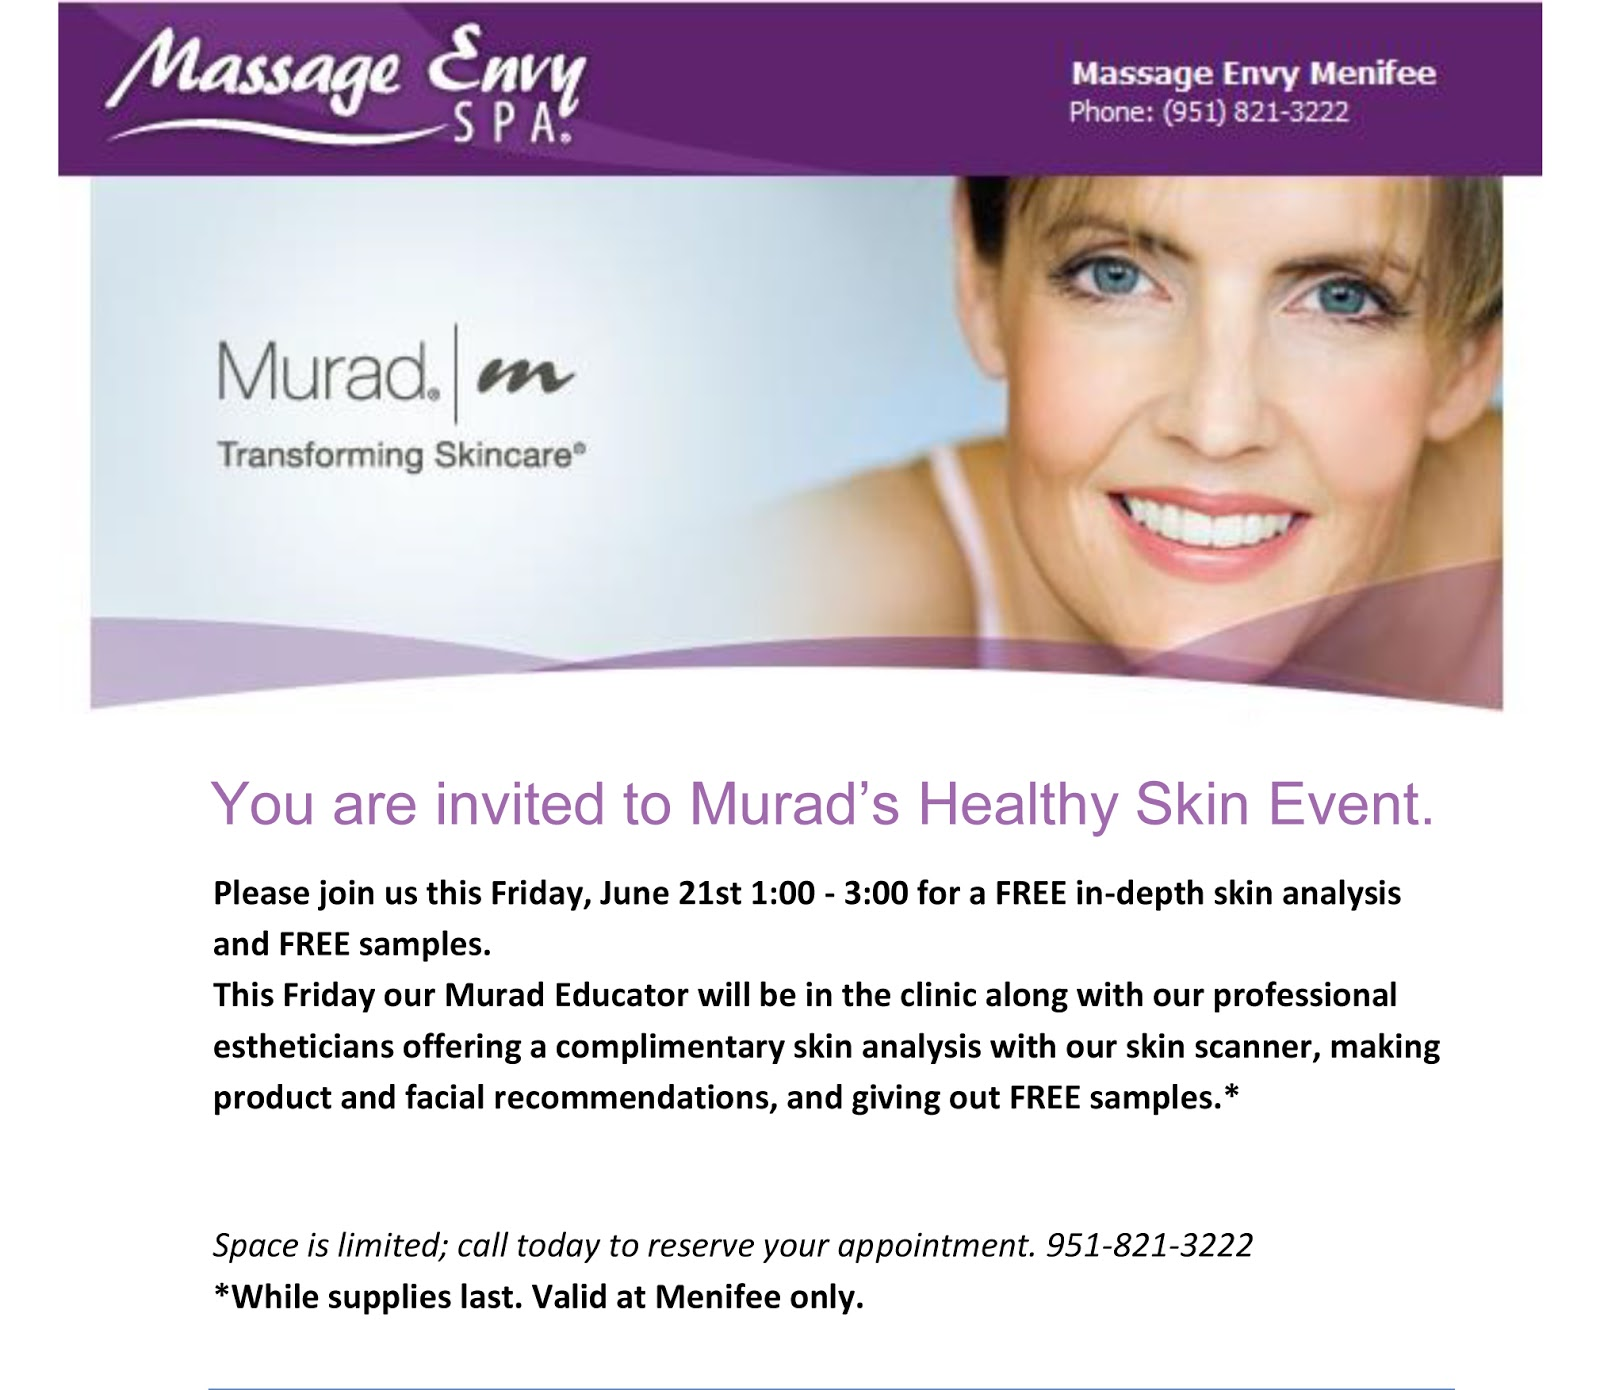 massage envy analysis report The investigative report said more than 180 women have filed sexual assault   massage envy provides little guidance to its 1,170 franchised.